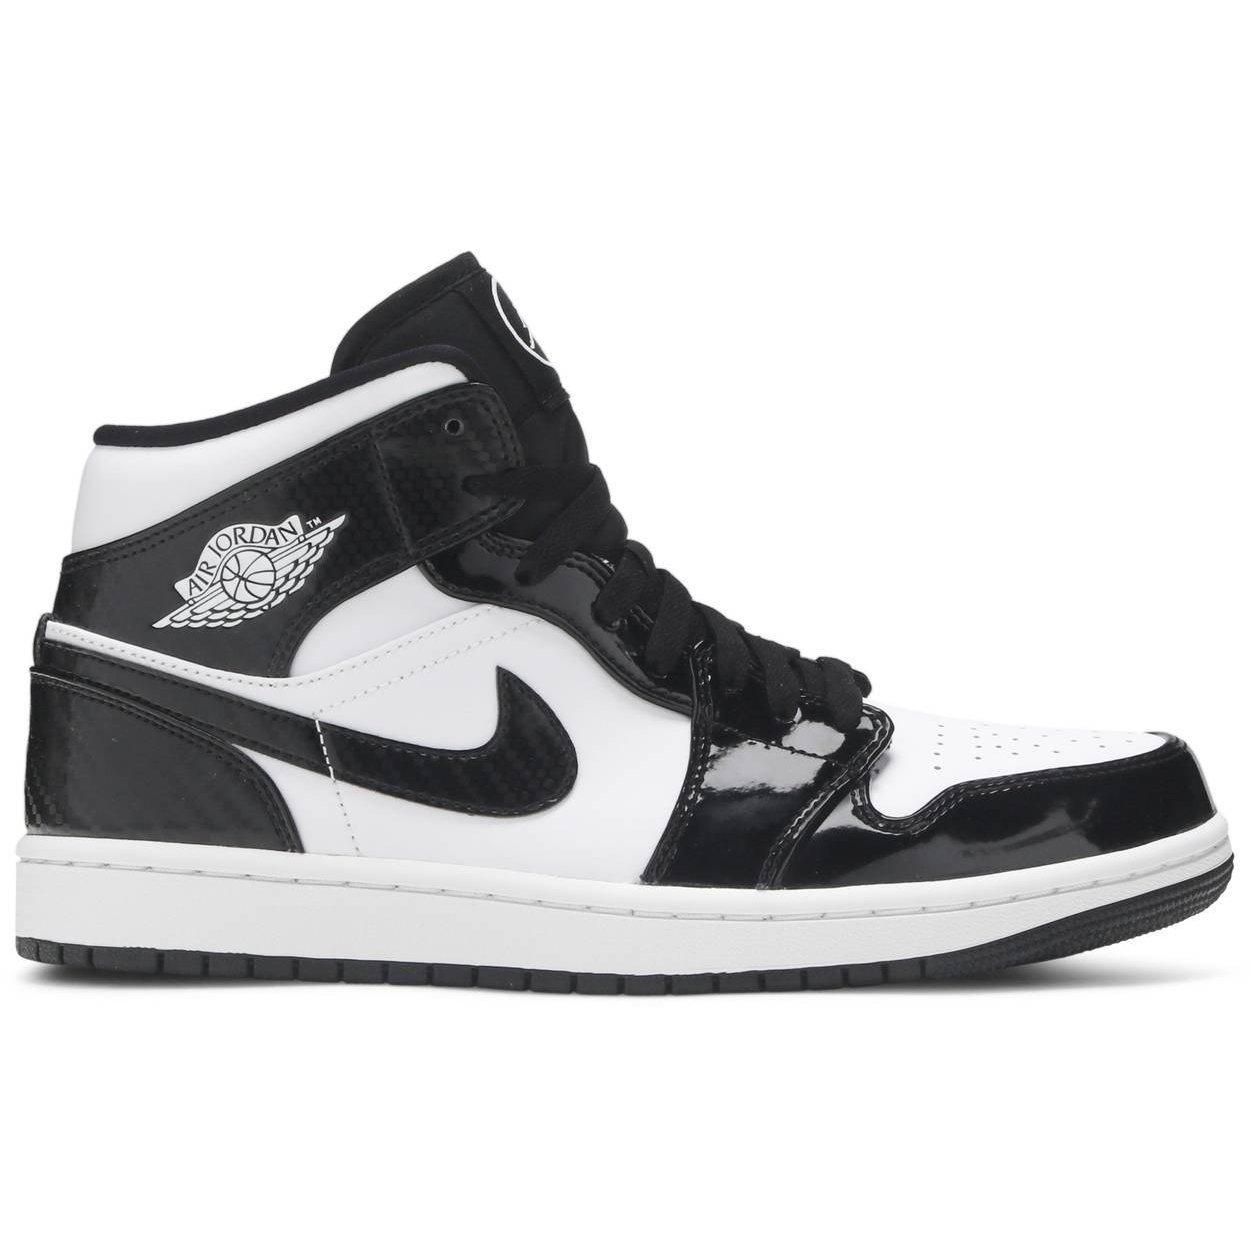 Nike Air Jordan 1 Mid SE 'All Star 2021' | Waves Never Die | Nike | Sneakers